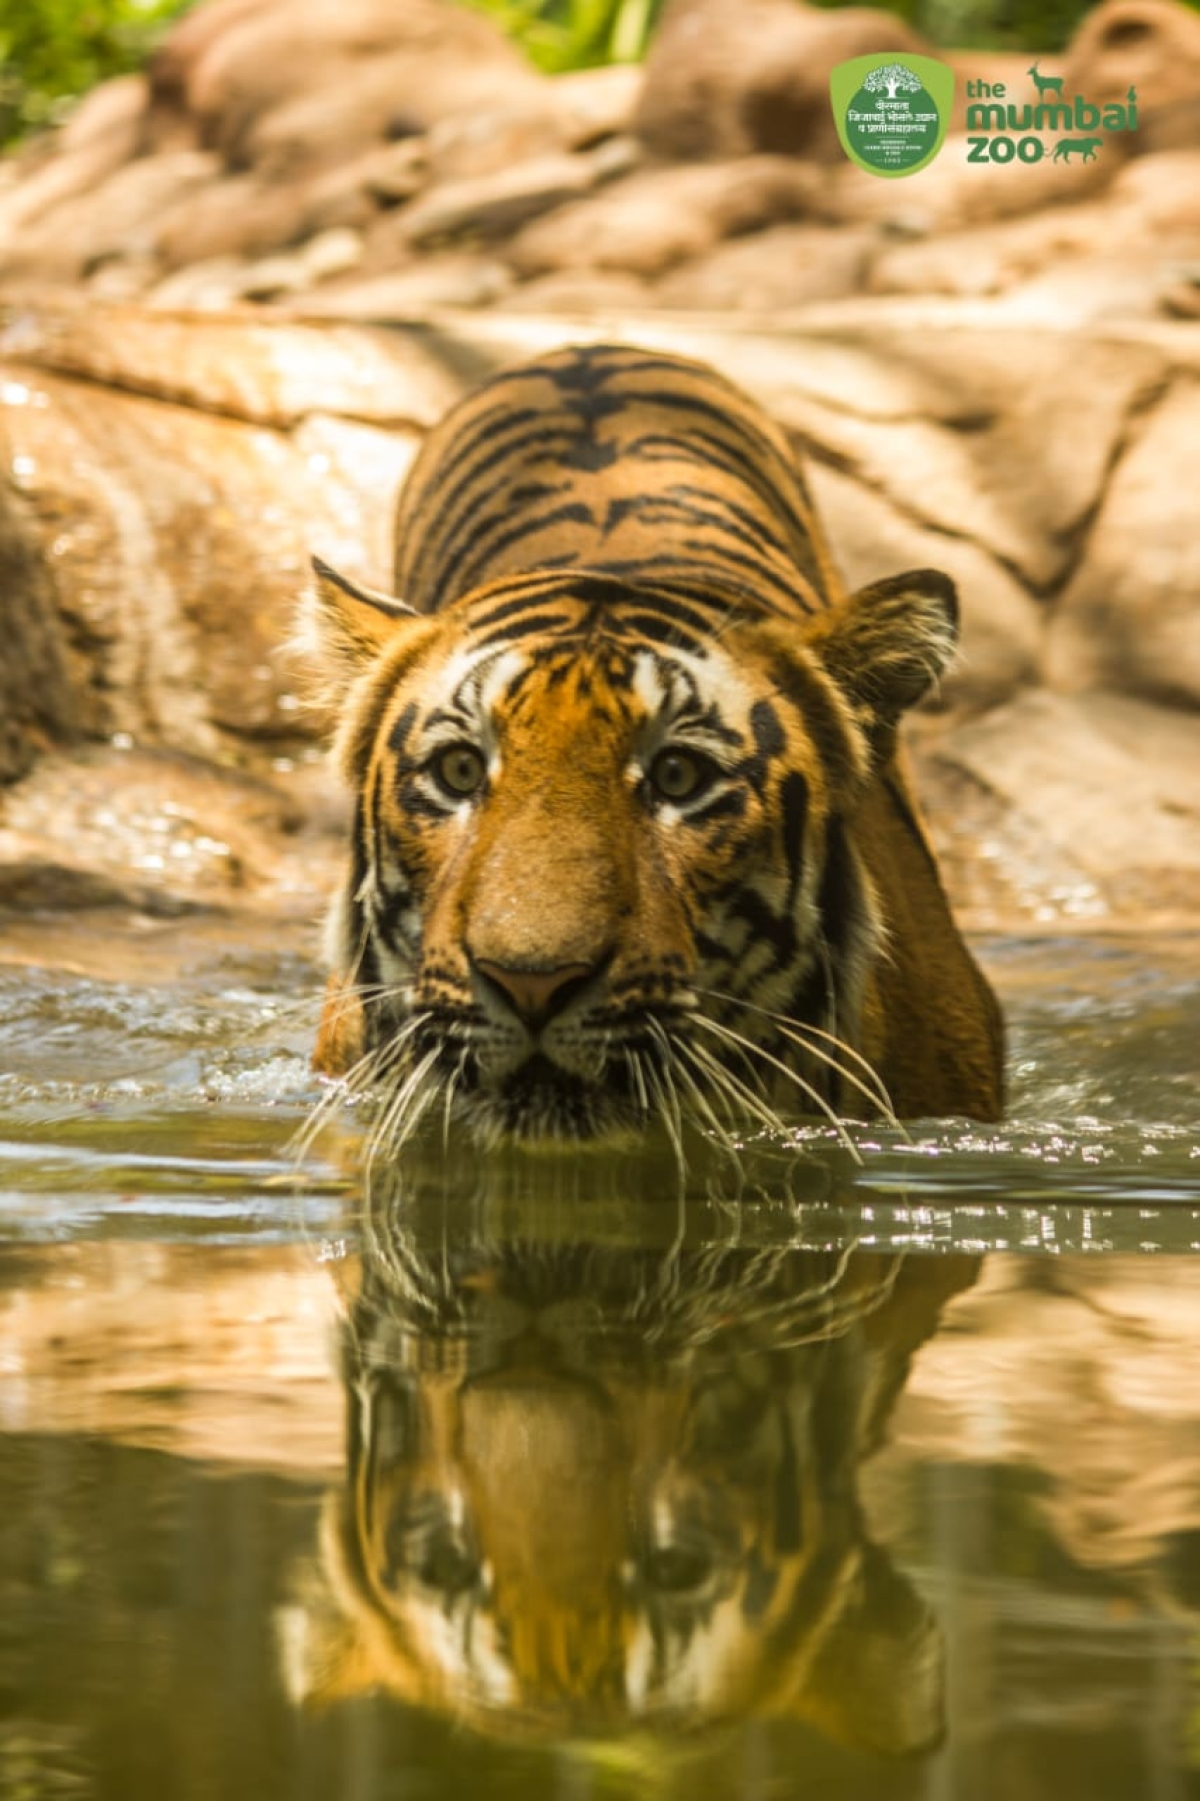 Watch: Majestic tiger Shakti is grace personified in first of its kind water enclosure in India